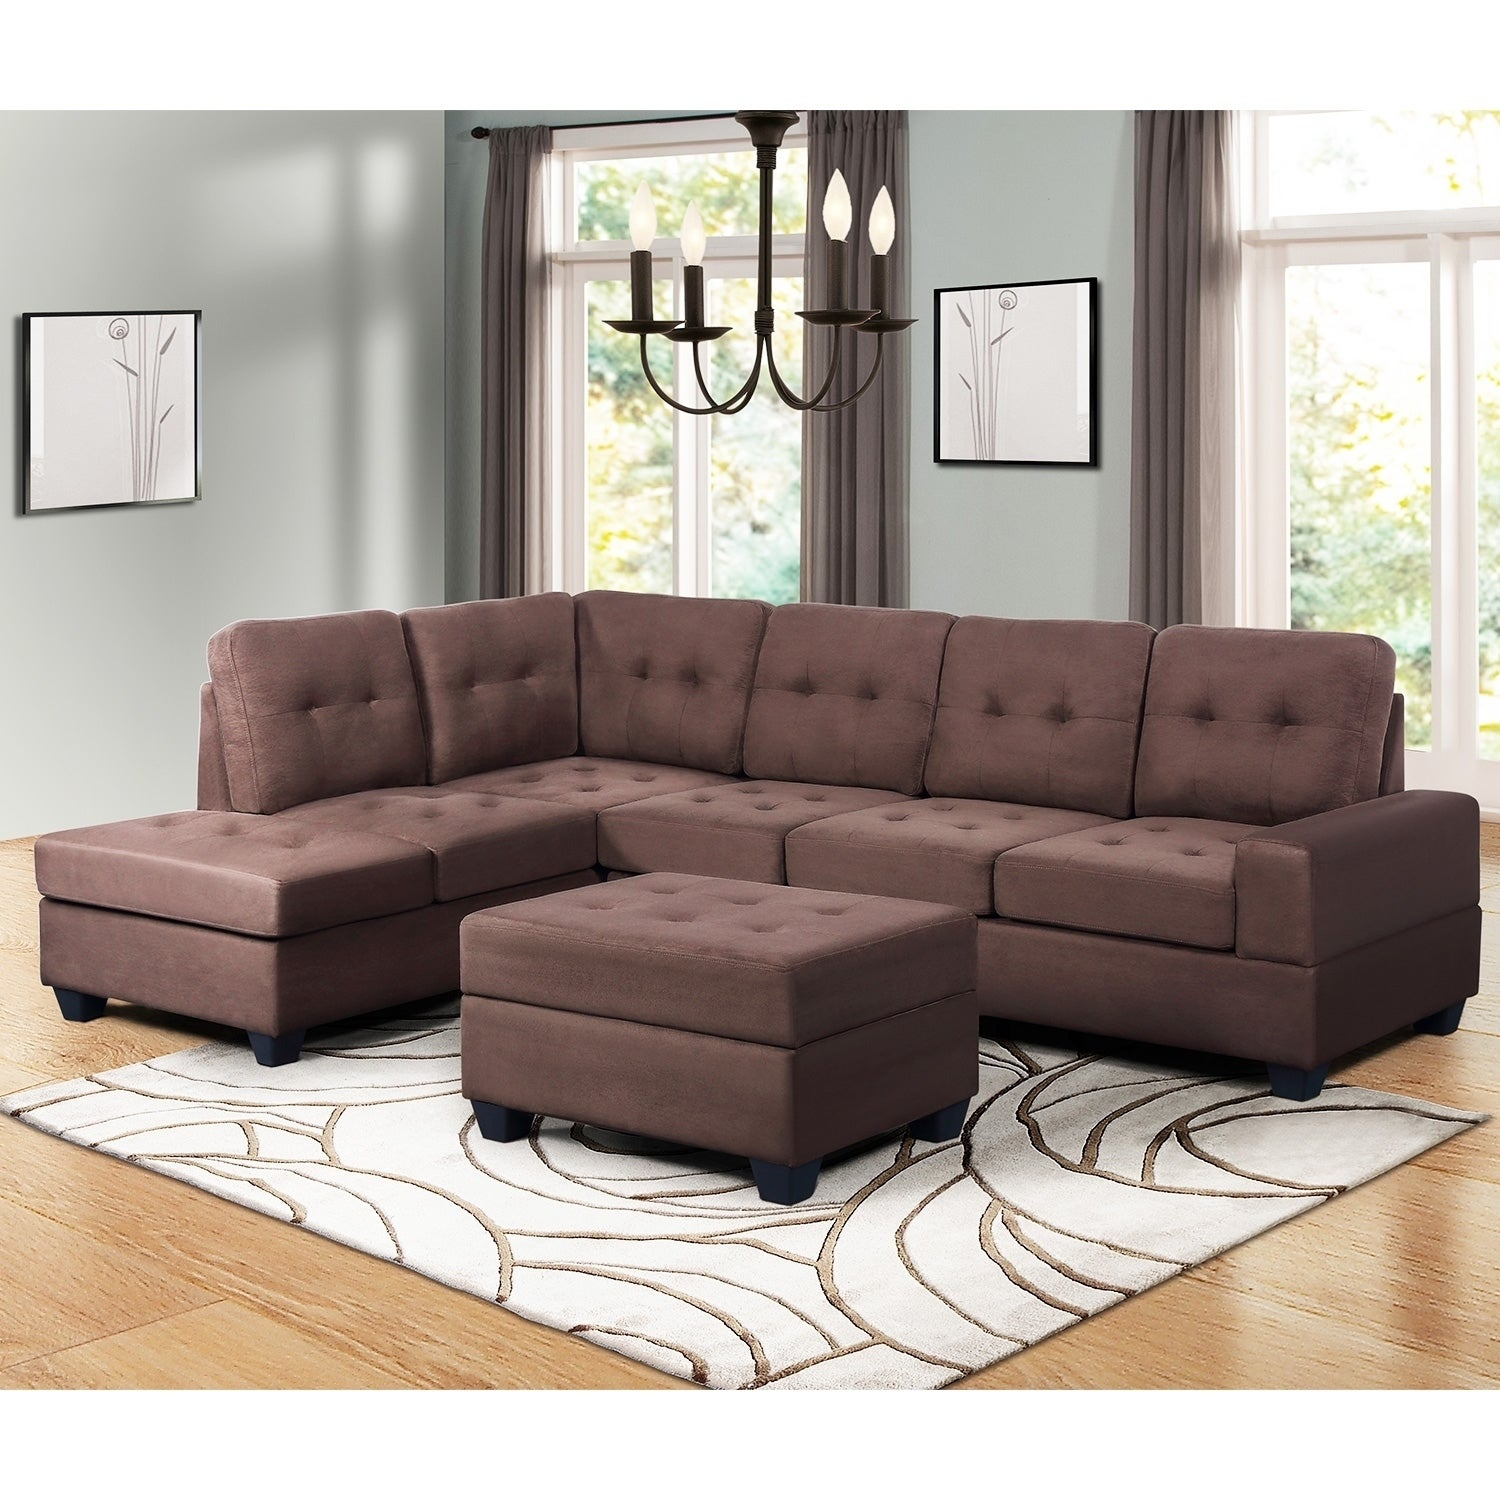 Harper Bright Designs 3 Piece Sectional Sofa With Chaise Lounge Ottoman And Cup Holders